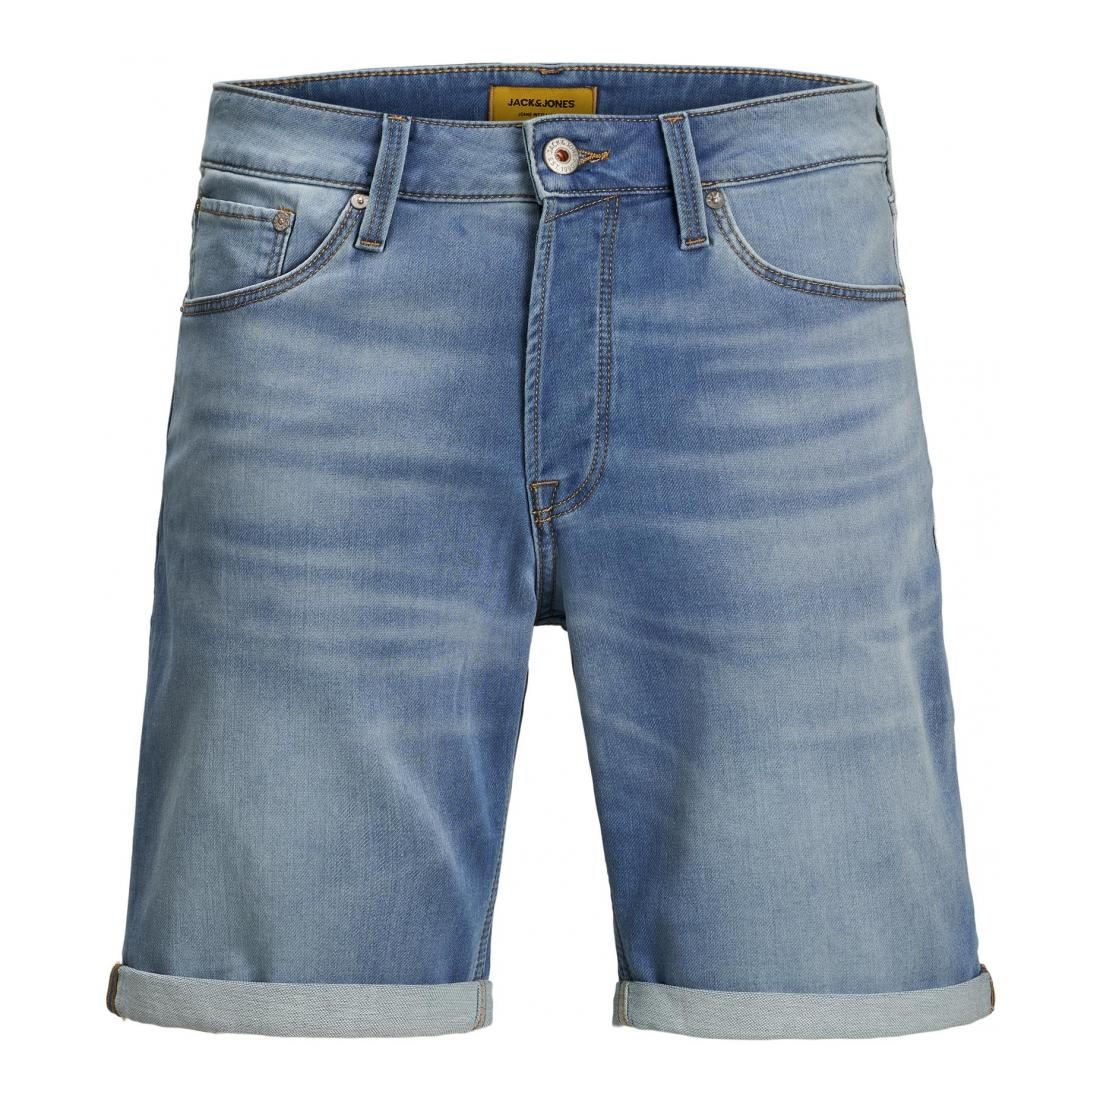 Jack & Jones Bermuda/Shorts Herren JJIRICK JJICON SHORTS GE